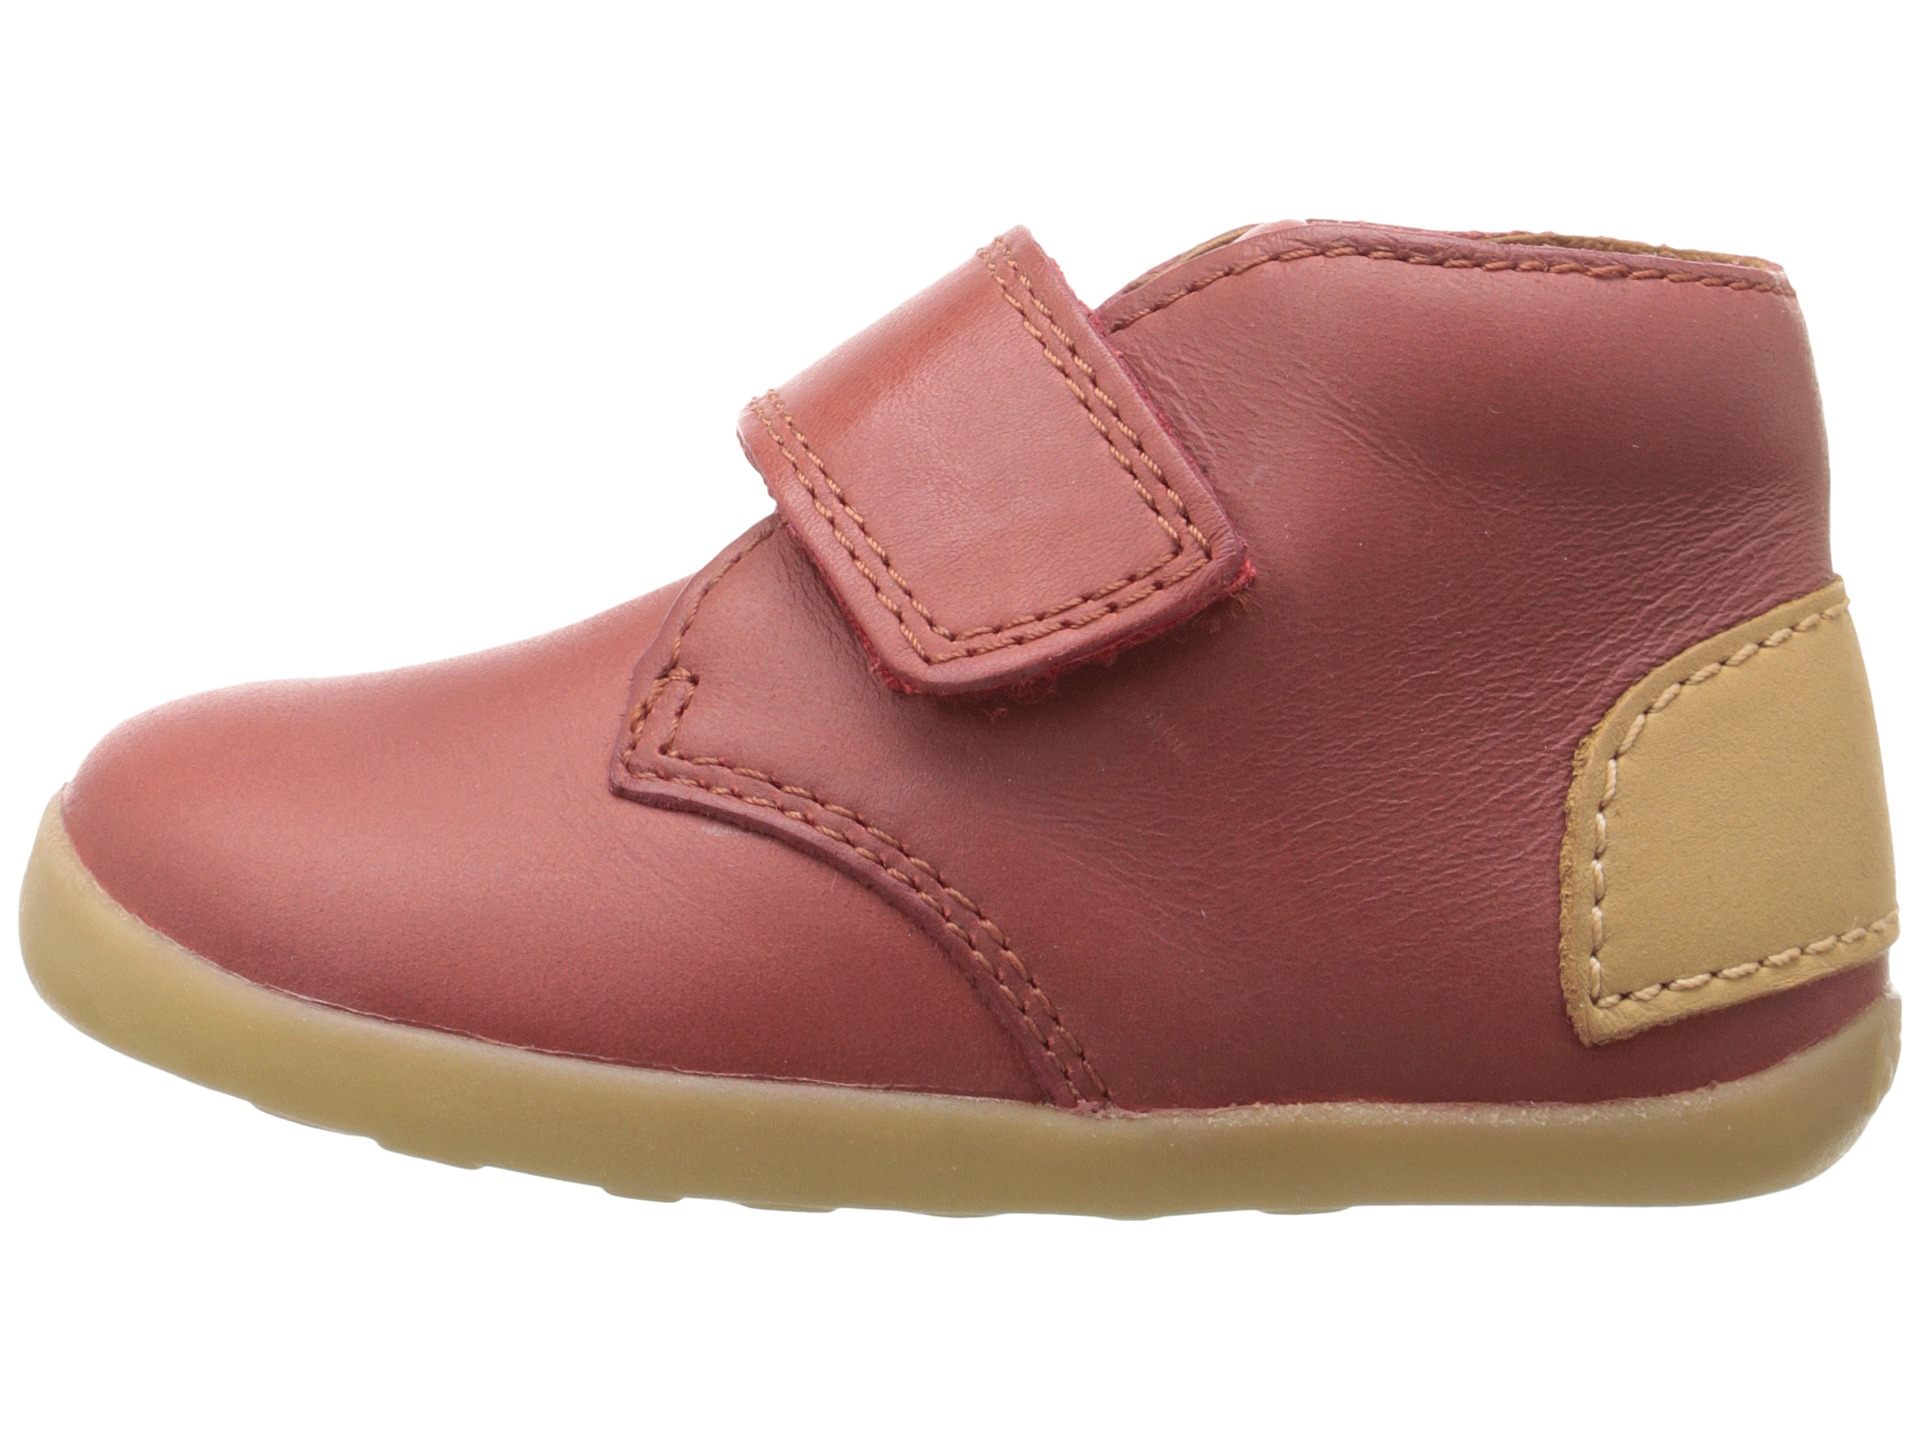 Natural Colored Toddler Boot